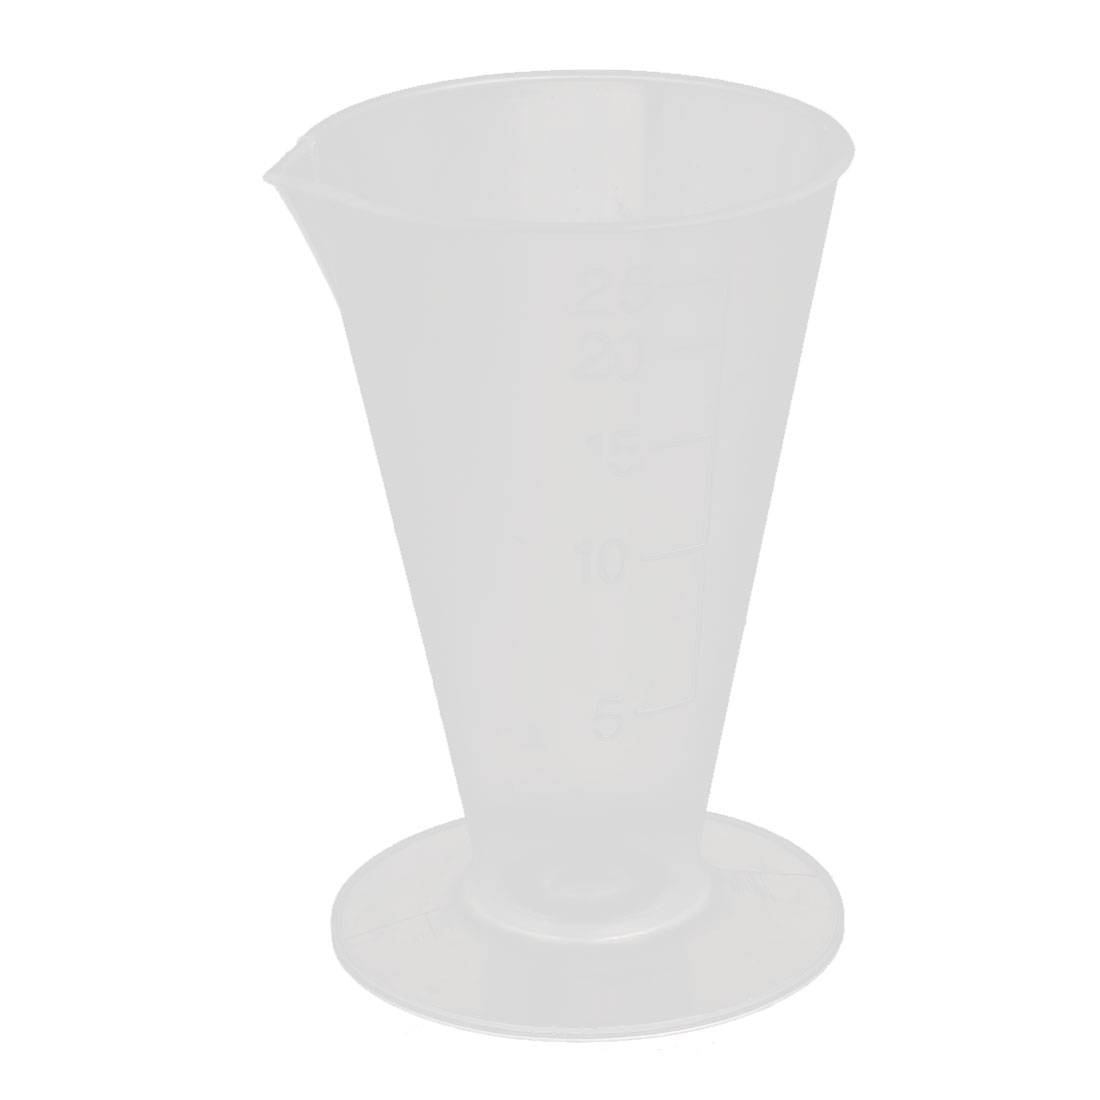 25mL Volumetric Graduated Laboratory Beaker Measuring Triangle Cup